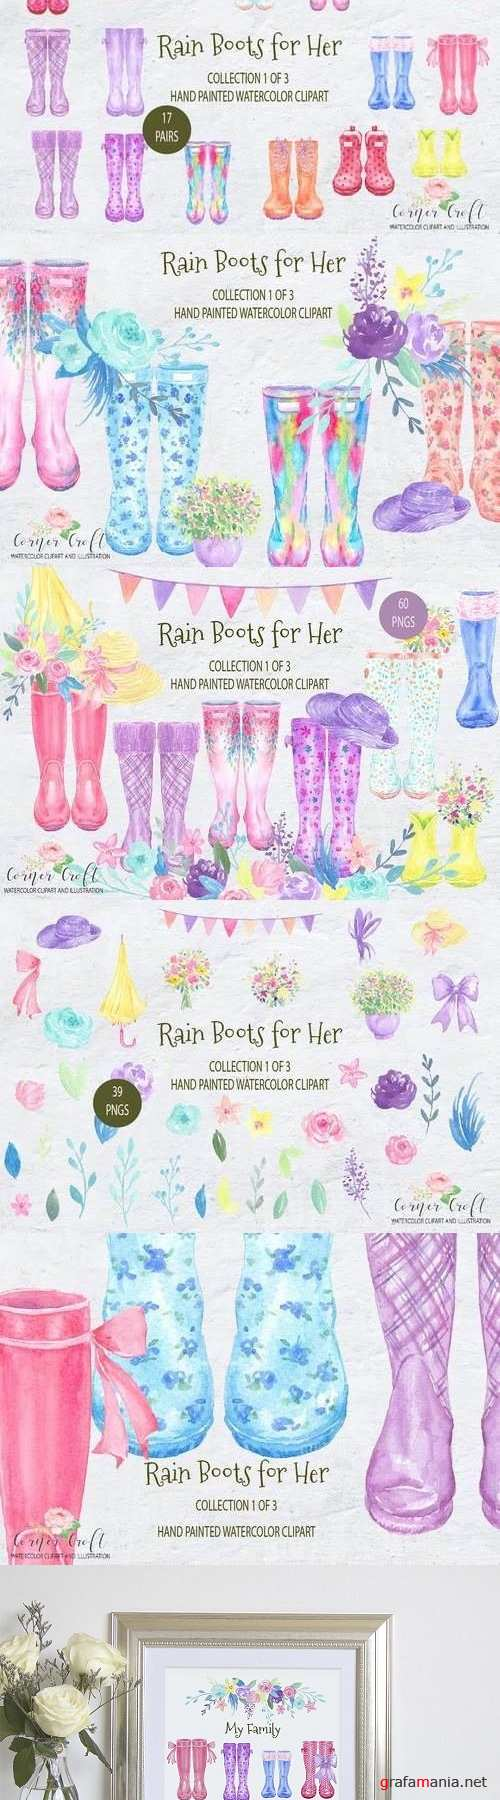 Watercolor Rain Boots for her - 2103988